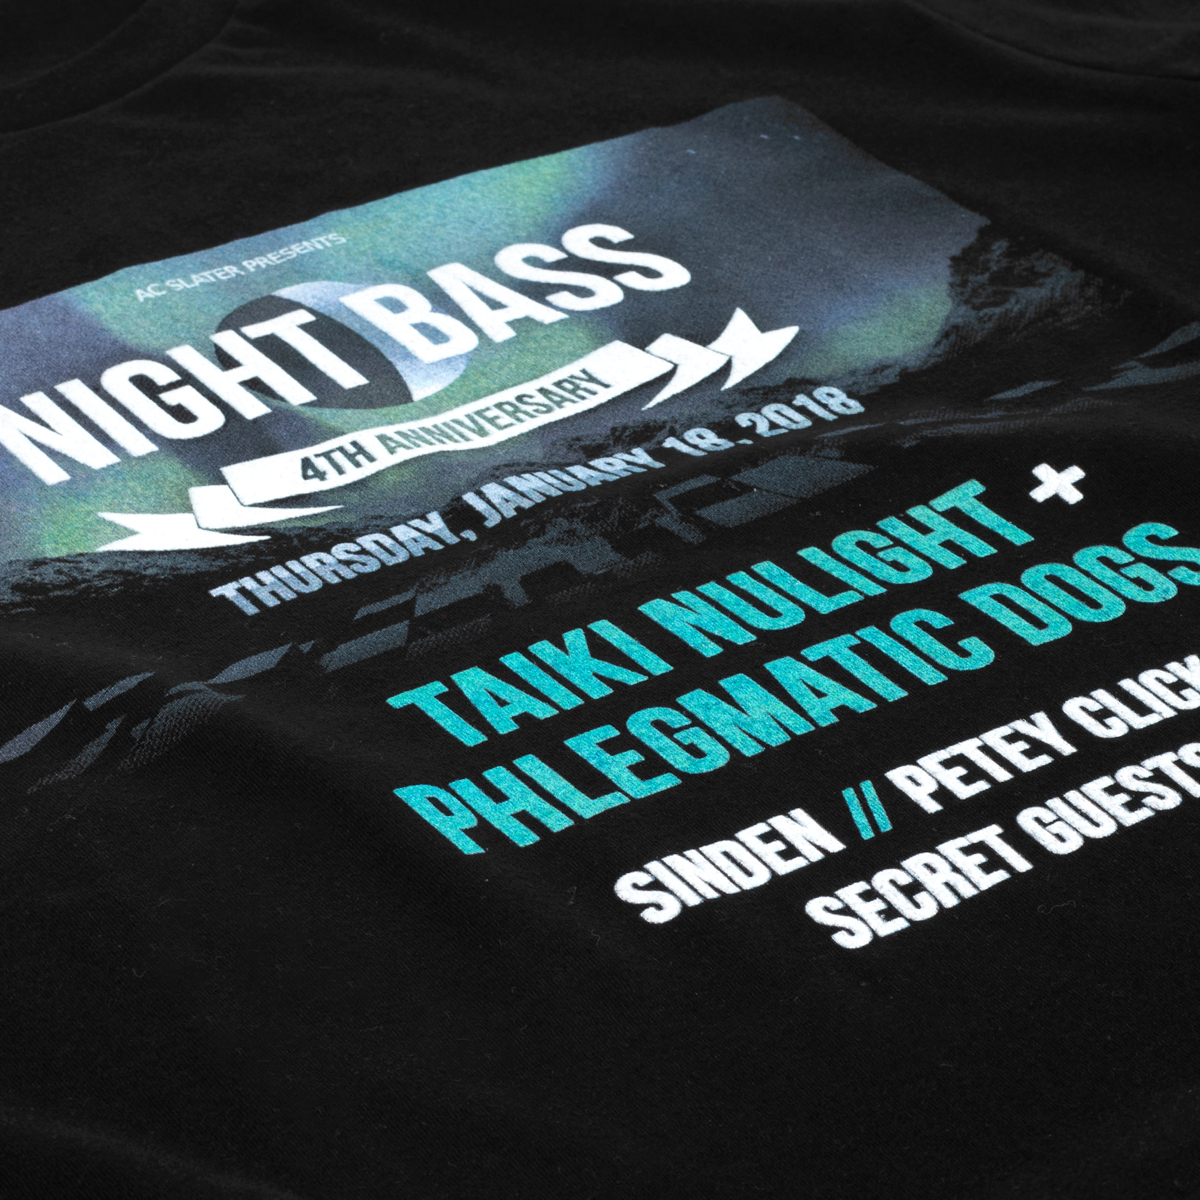 Night Bass 4 Year Anniversary T-Shirt